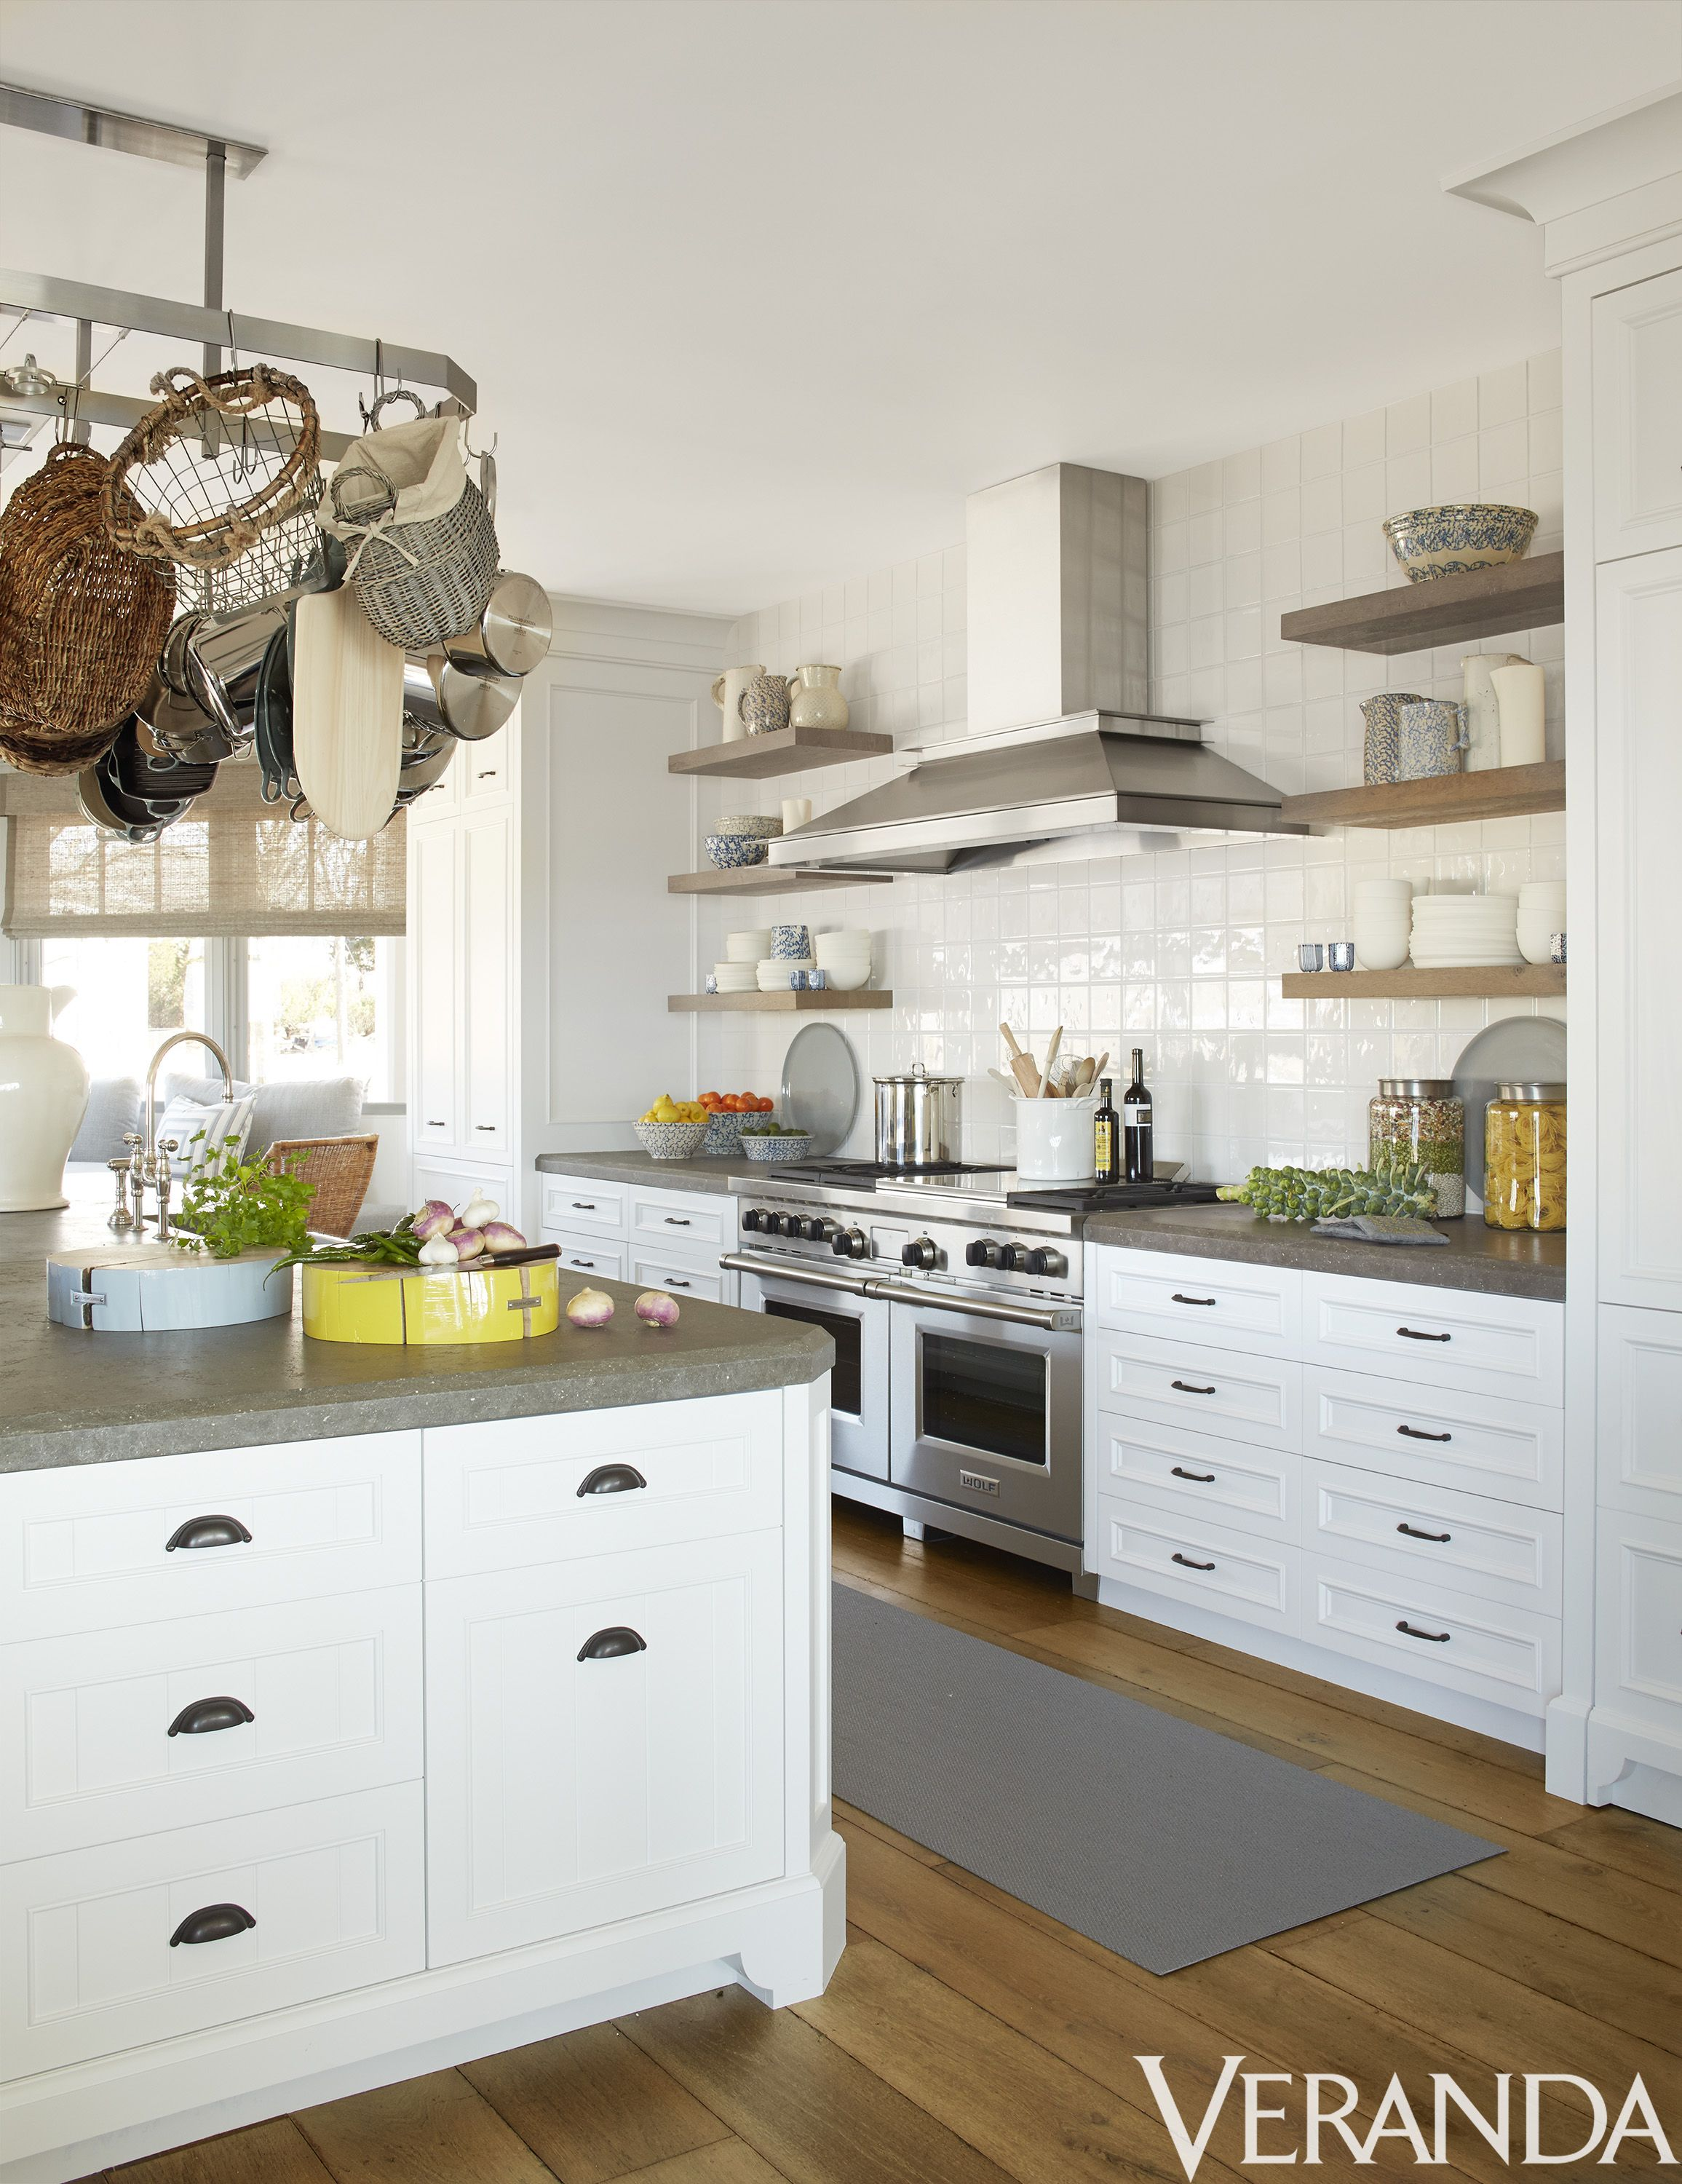 20 Best Kitchen Island Ideas - Beautiful Kitchen Islands